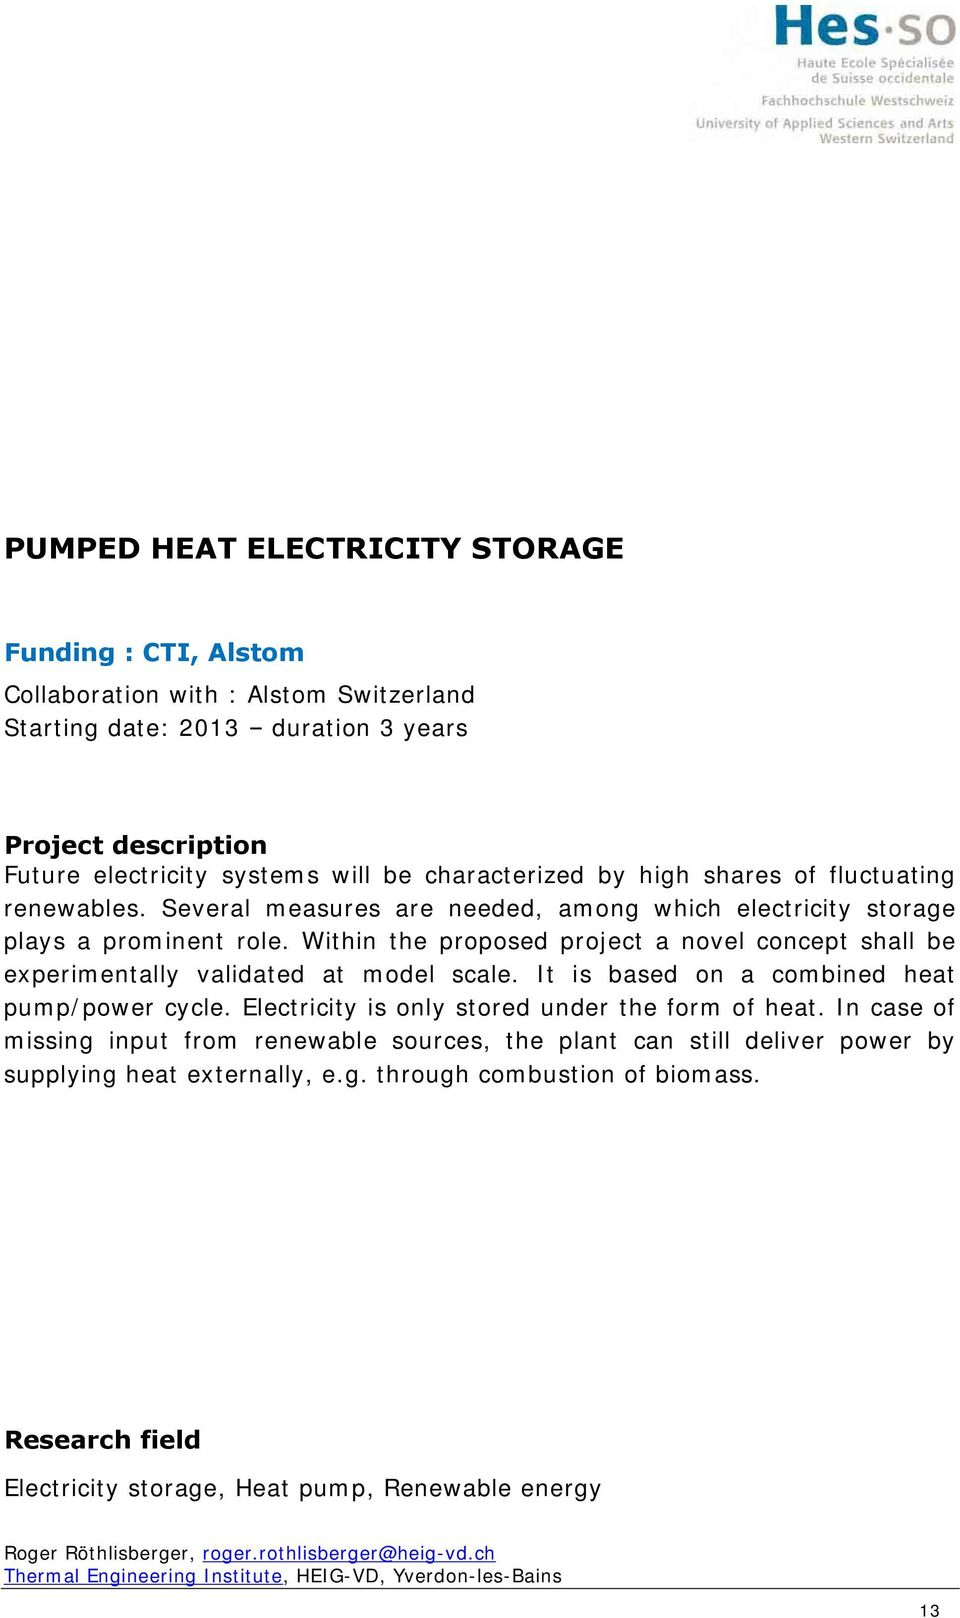 Within the proposed project a novel concept shall be experimentally validated at model scale. It is based on a combined heat pump/power cycle. Electricity is only stored under the form of heat.